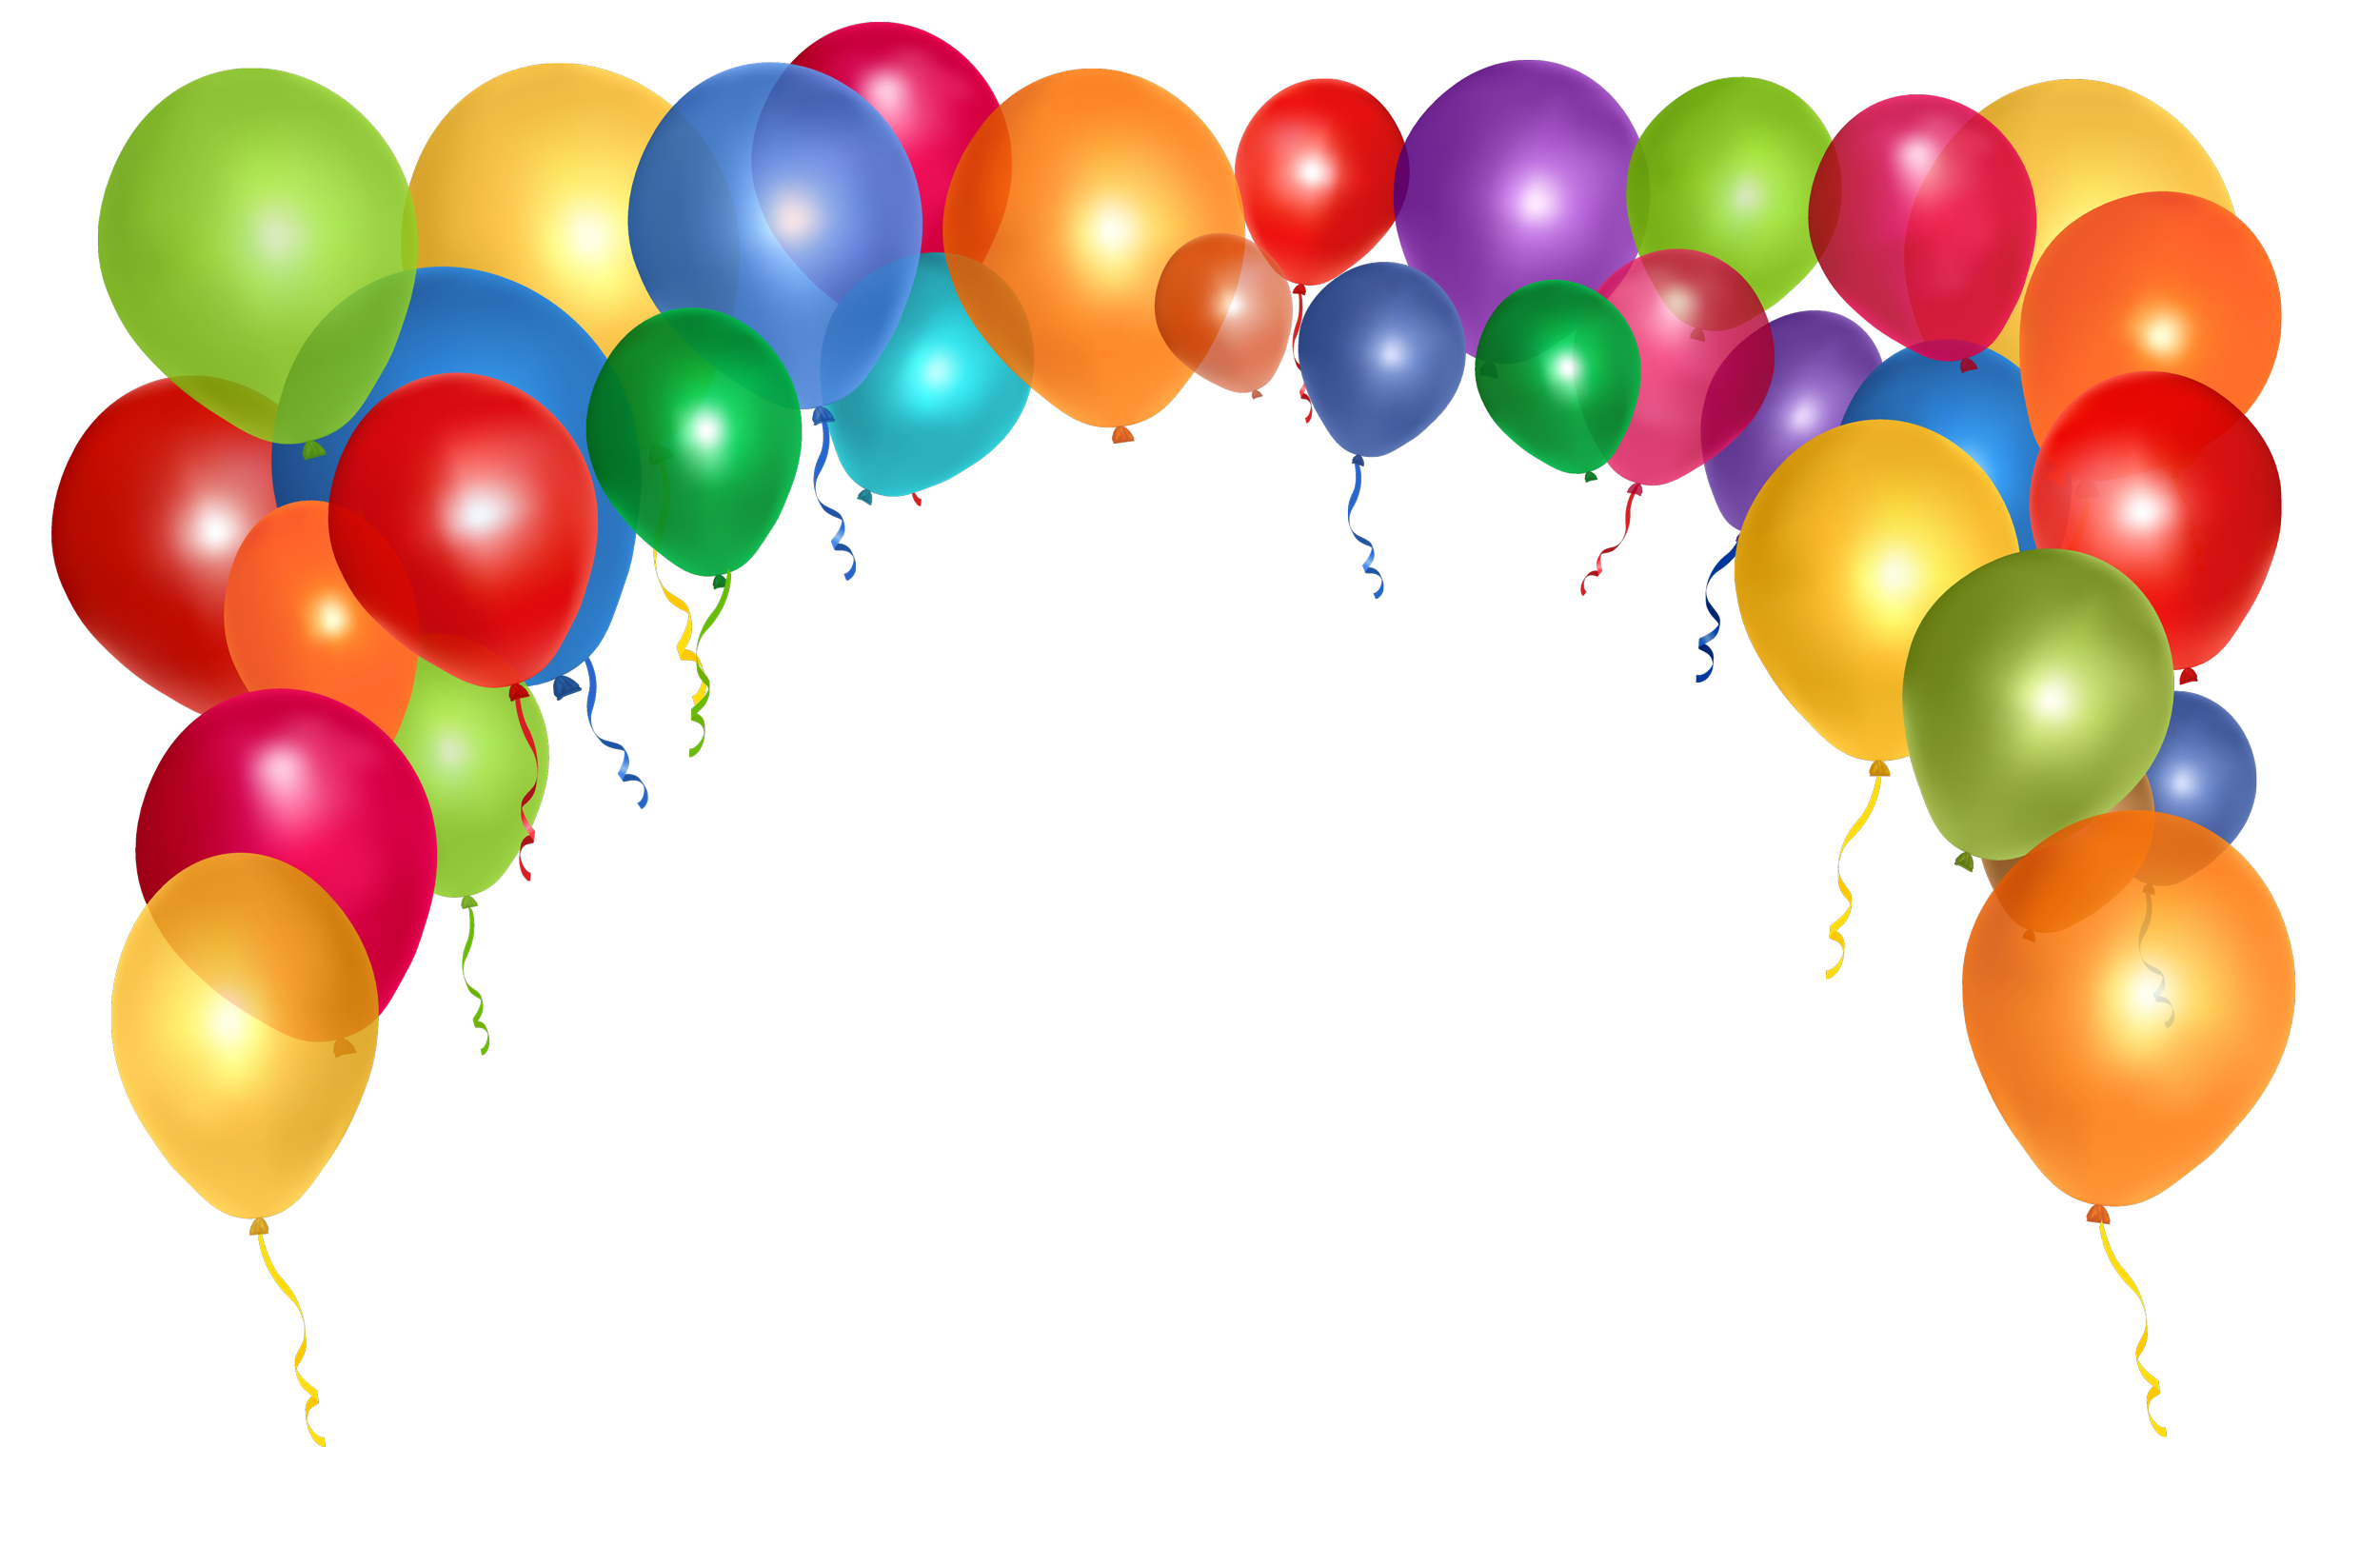 Png pictures free download. Balloons images transparent pngmart